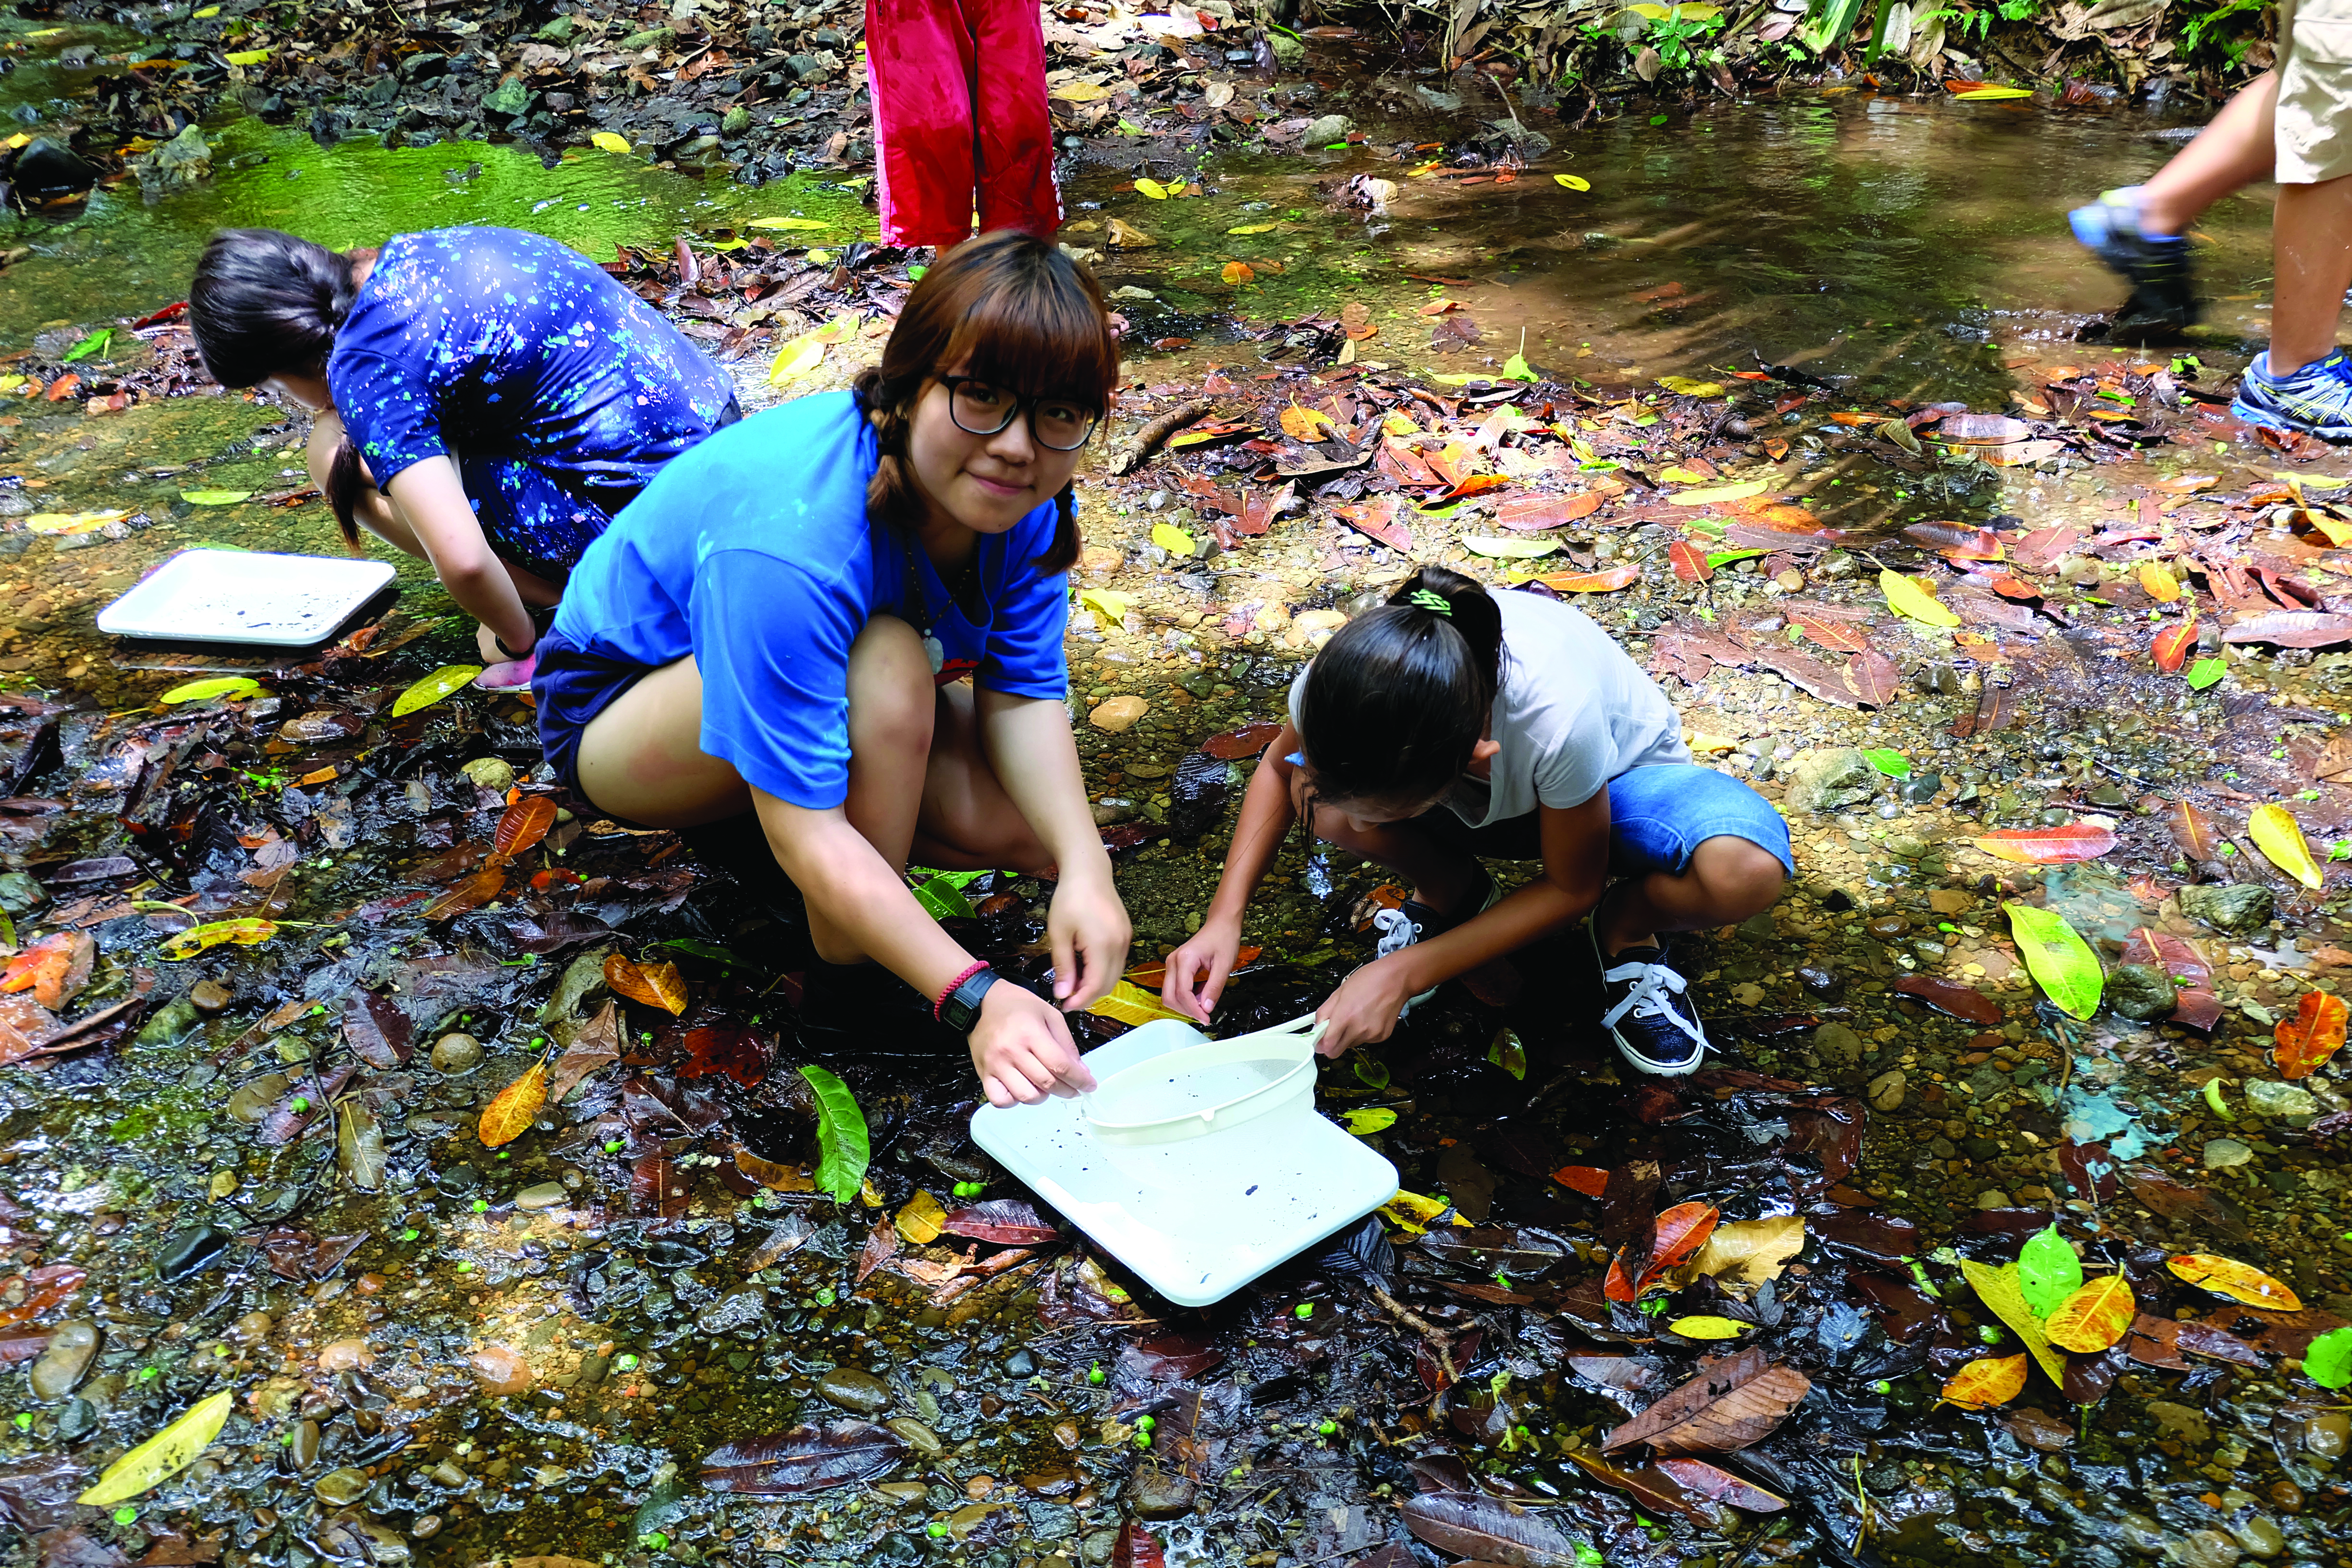 Students collect rain forest samples on a field trip to Costa Rica organized by World International School. Districts must manage political and safety concerns as they continue to send students abroad.